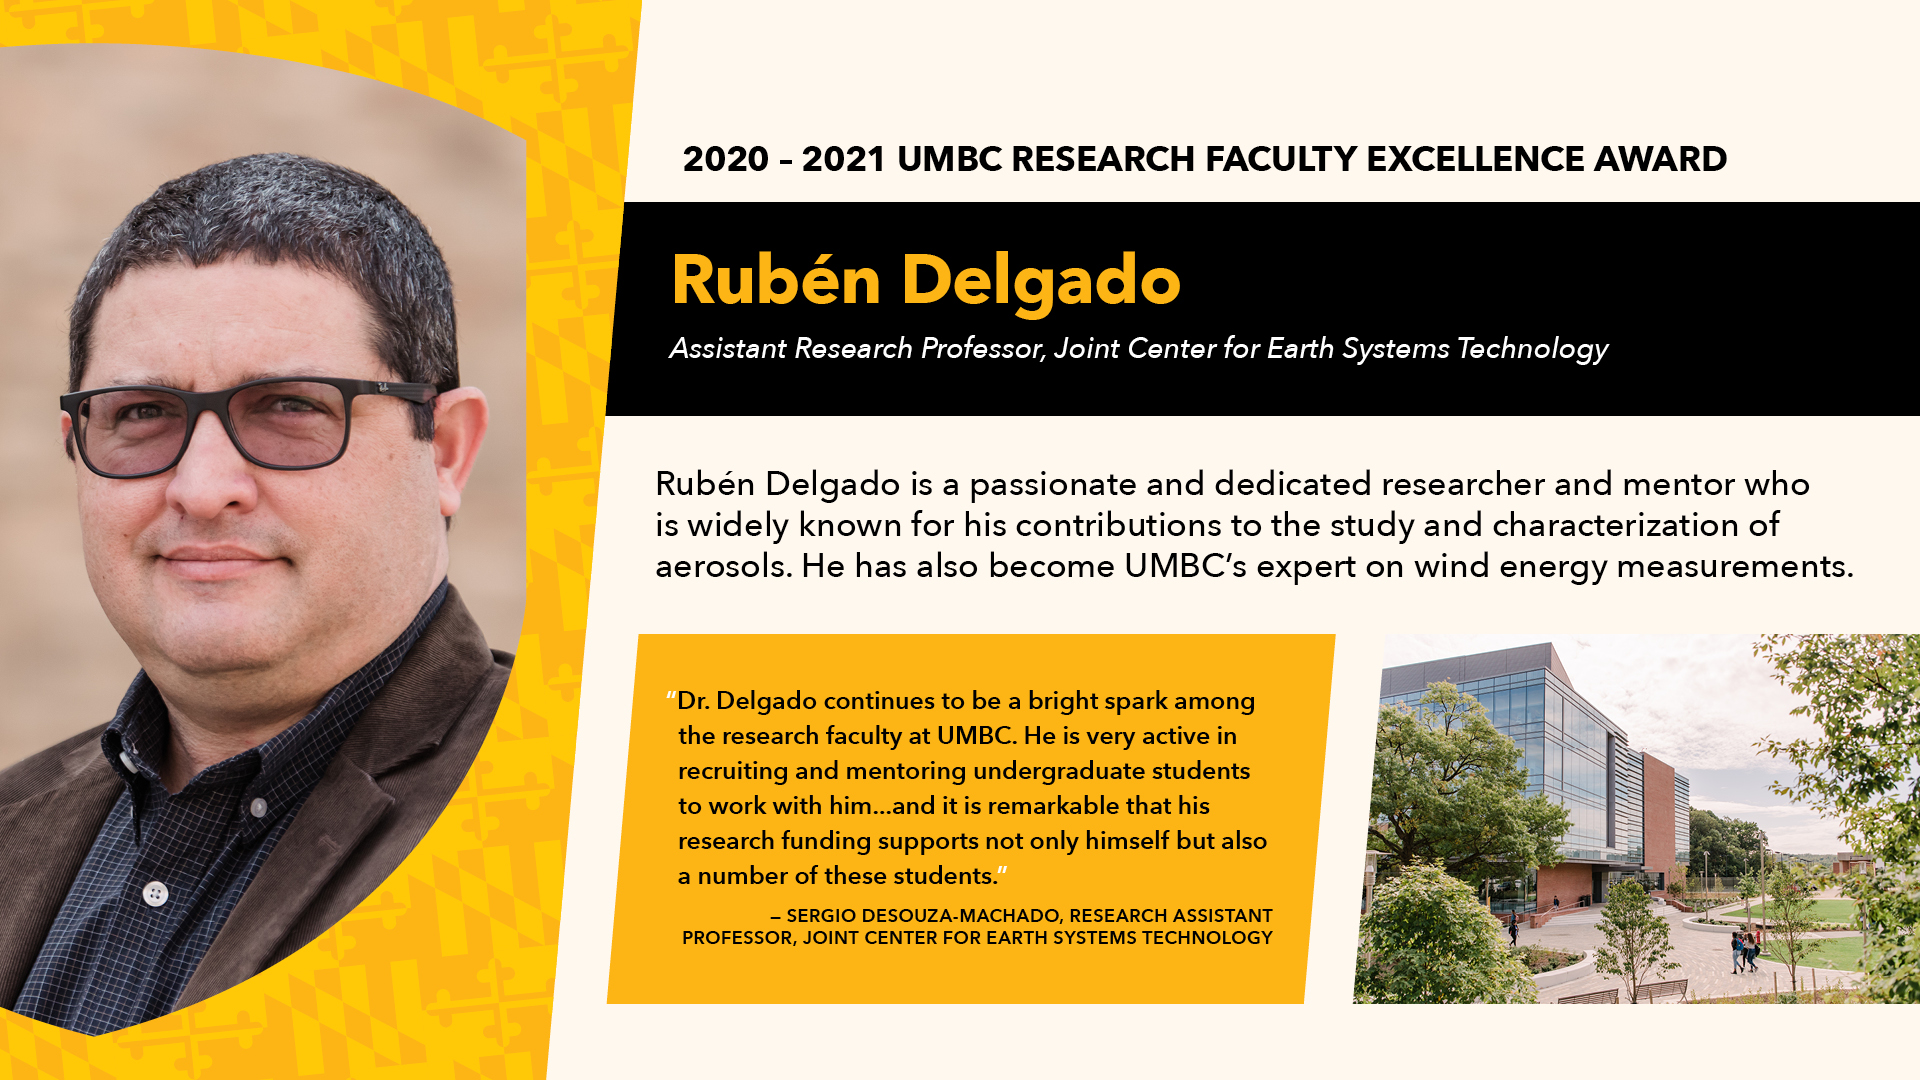 2020-2021 UMBC Research Faculty Excellence Award